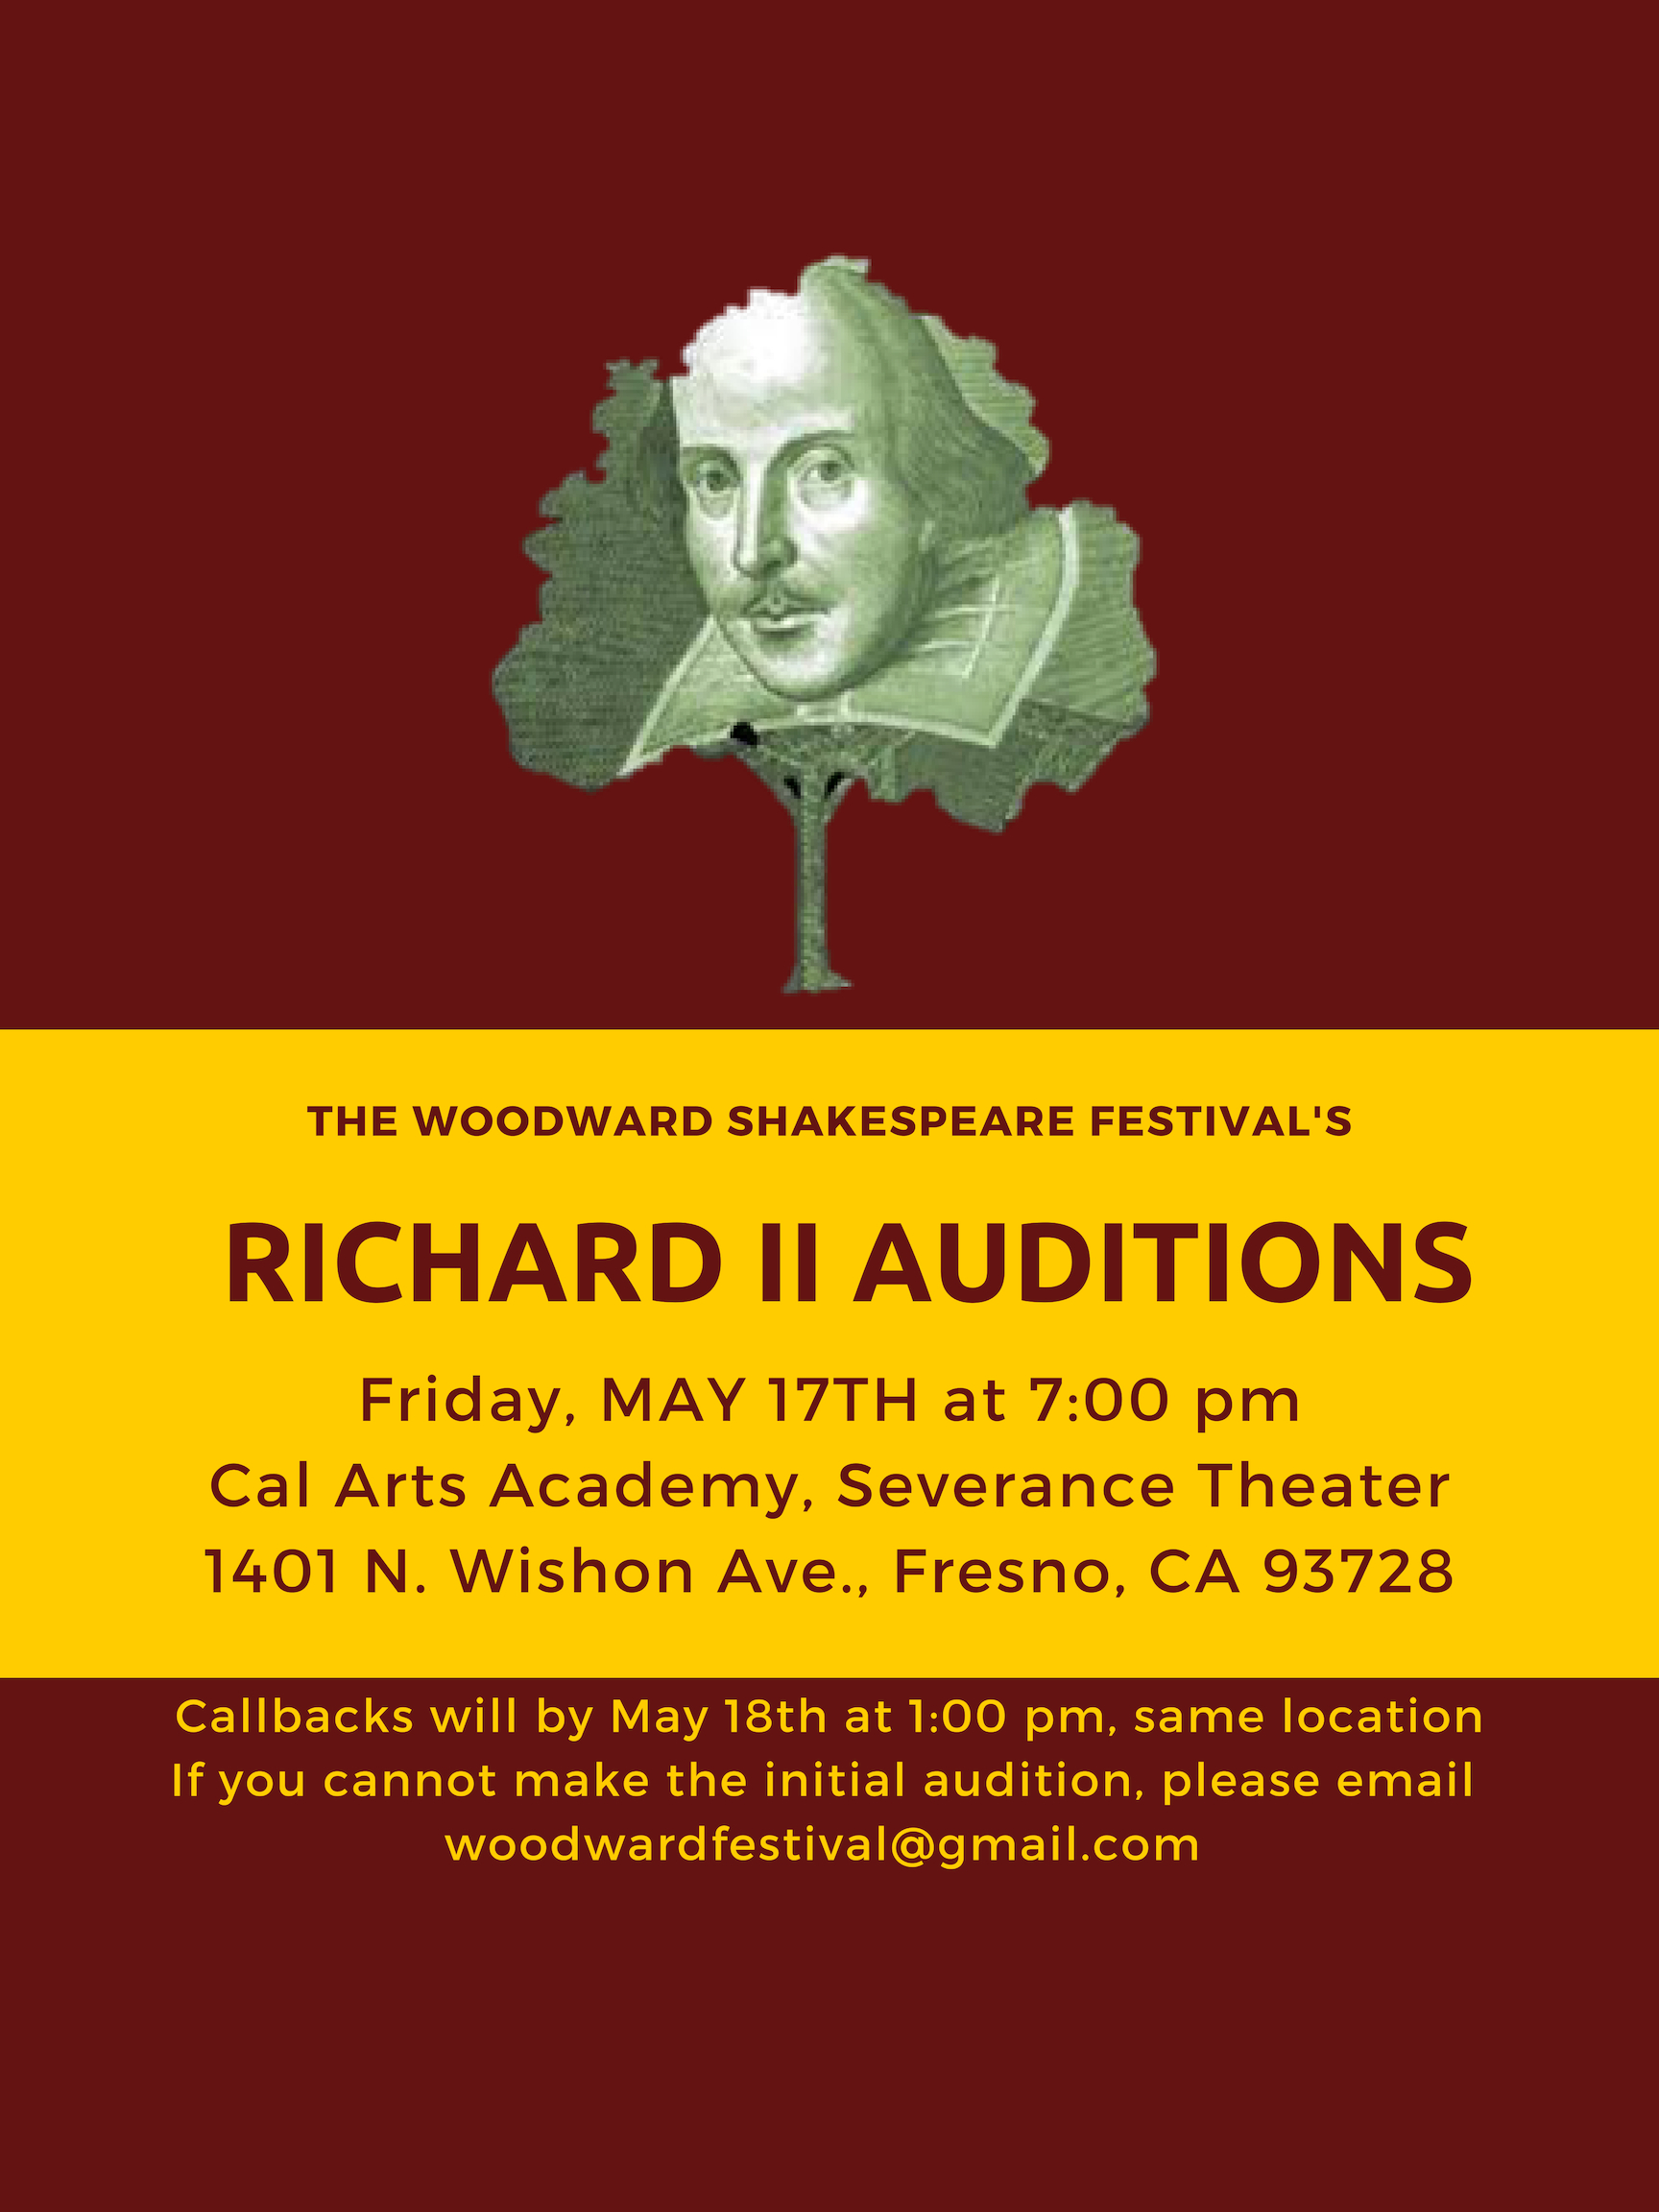 Richard II Auditions_Woodward Shakespeare Festival